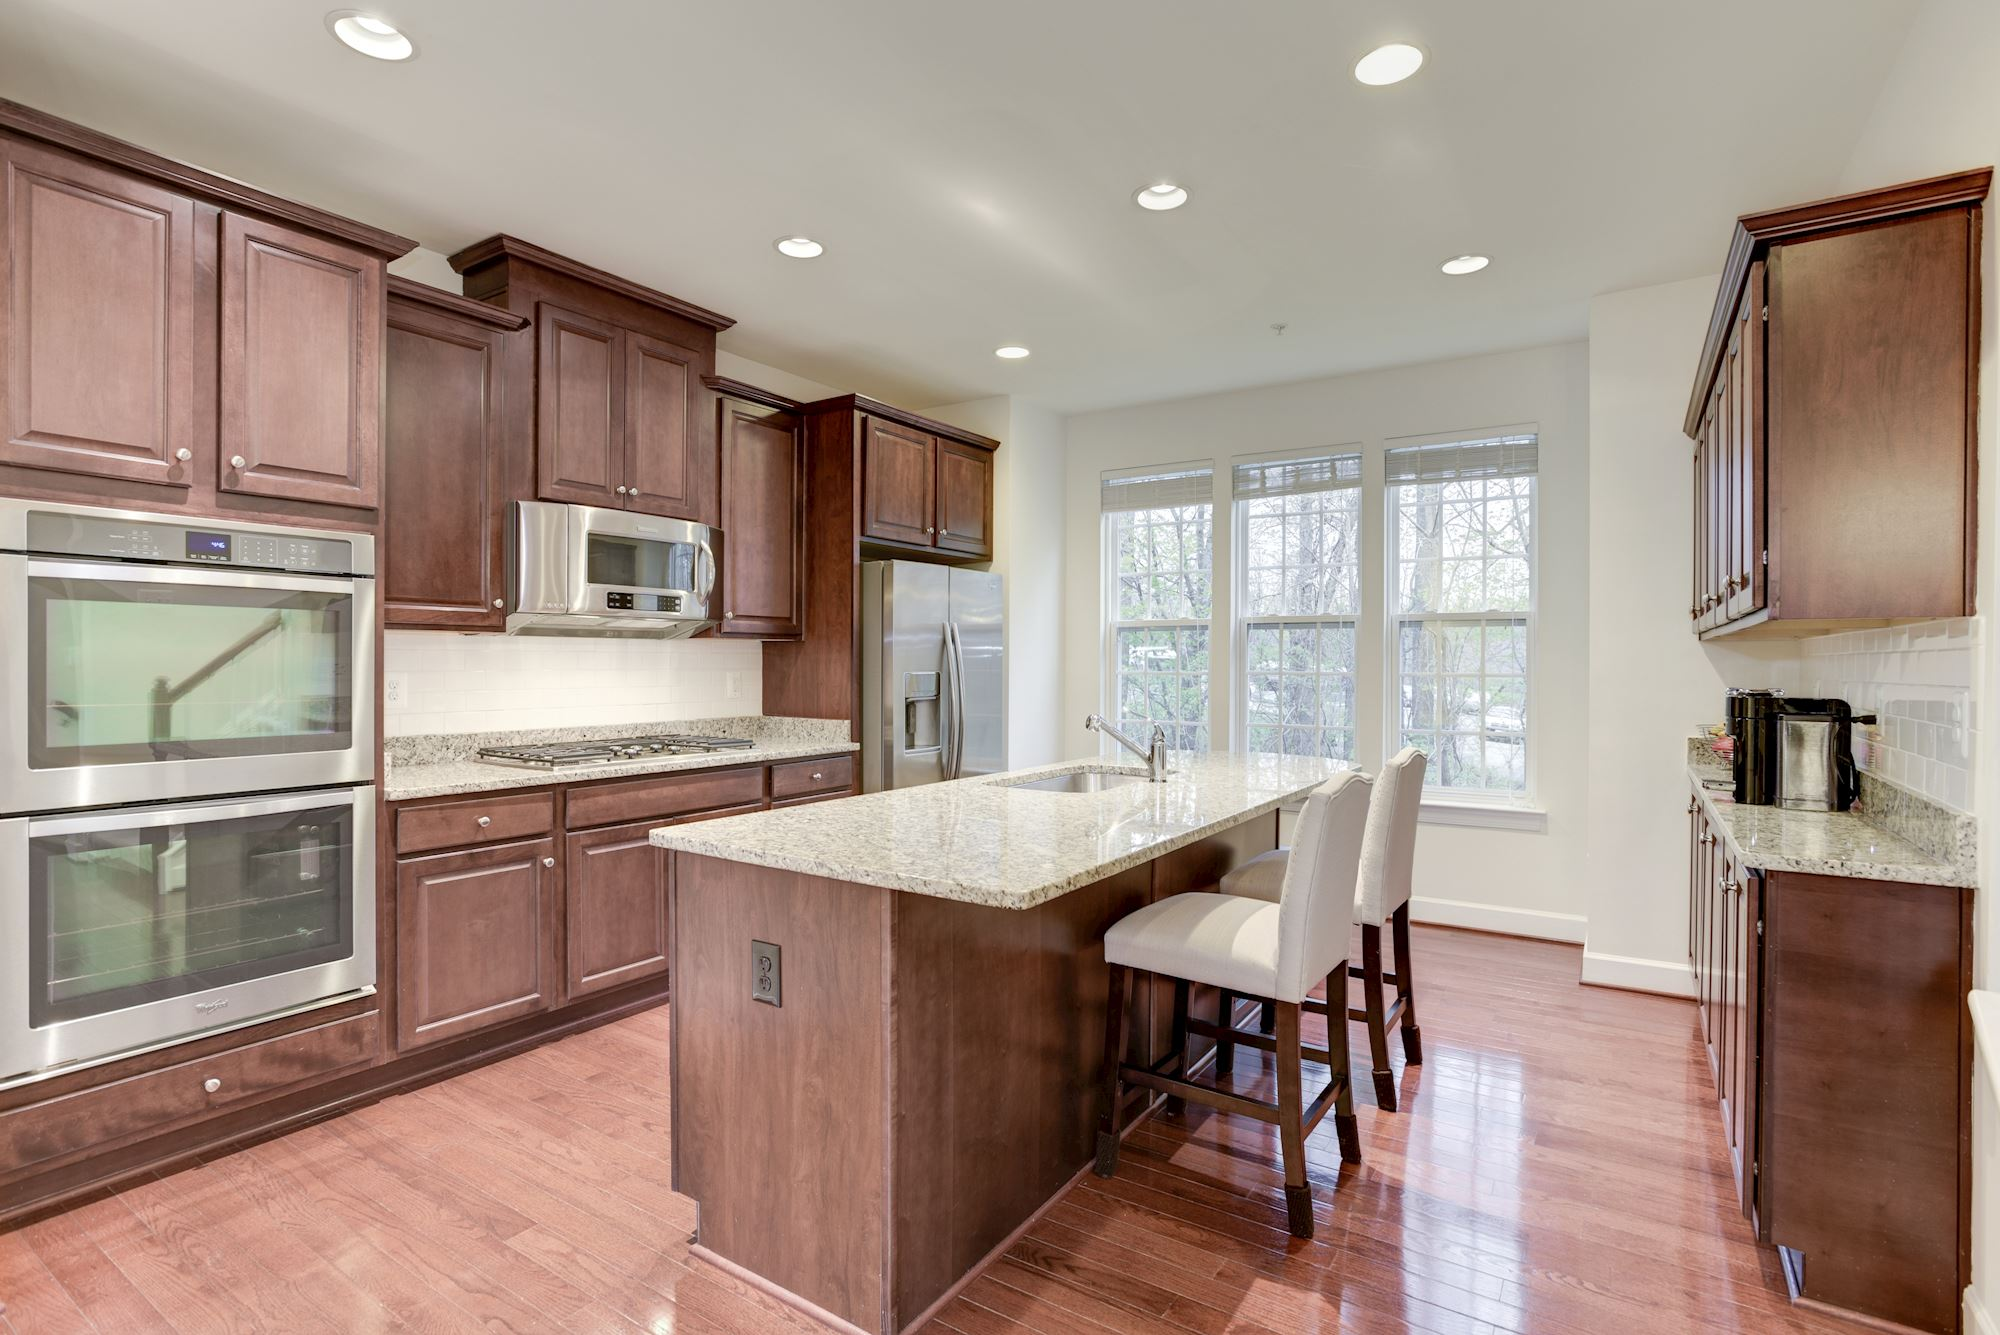 NEW LISTING: Modern Stanley Martin Home in Downtown Fairfax